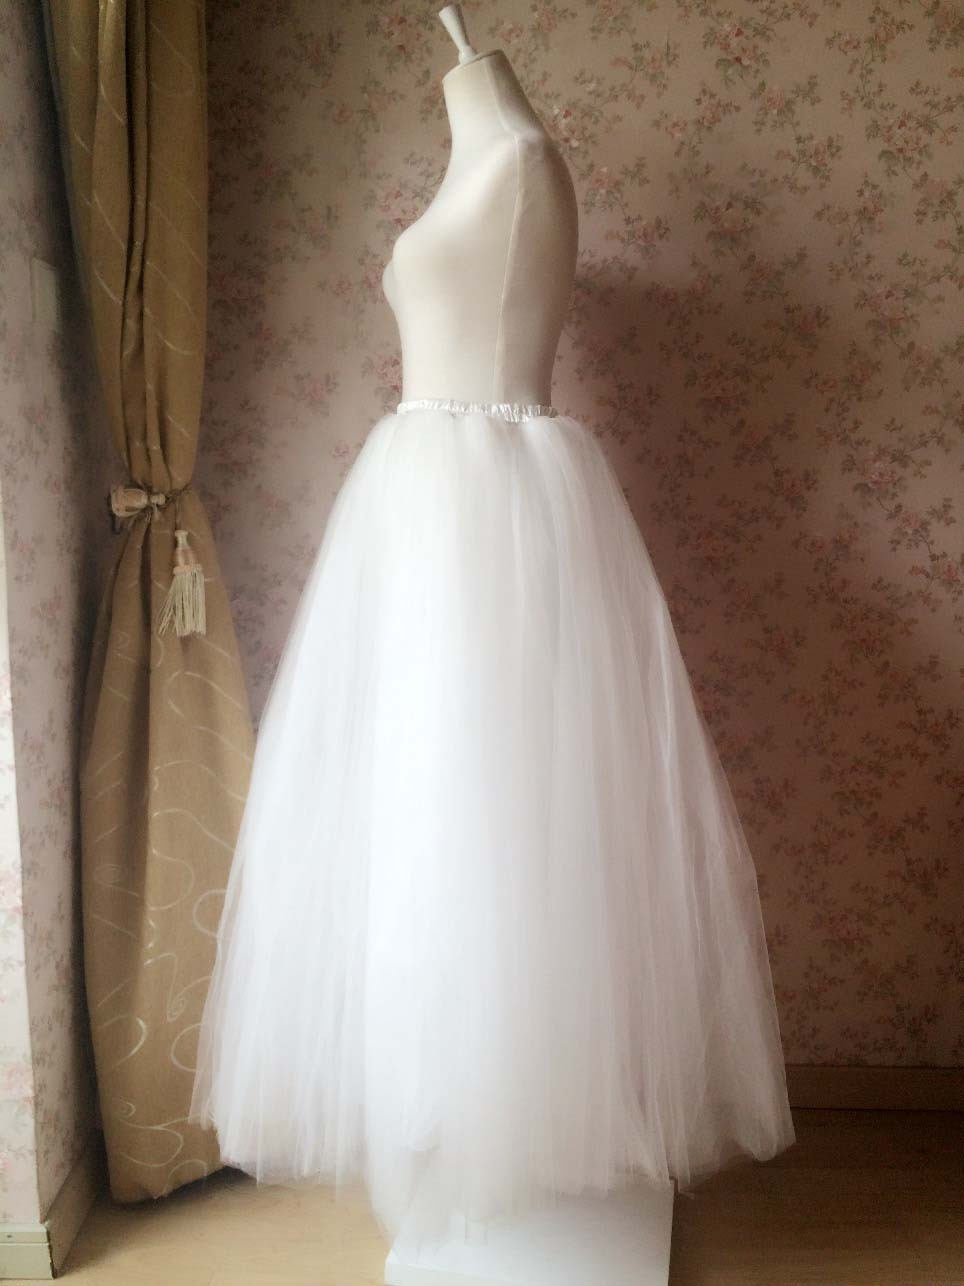 4-Layered White Tulle Skirt White Maxi Tulle Skirt Petticoat White Bridal Tutu